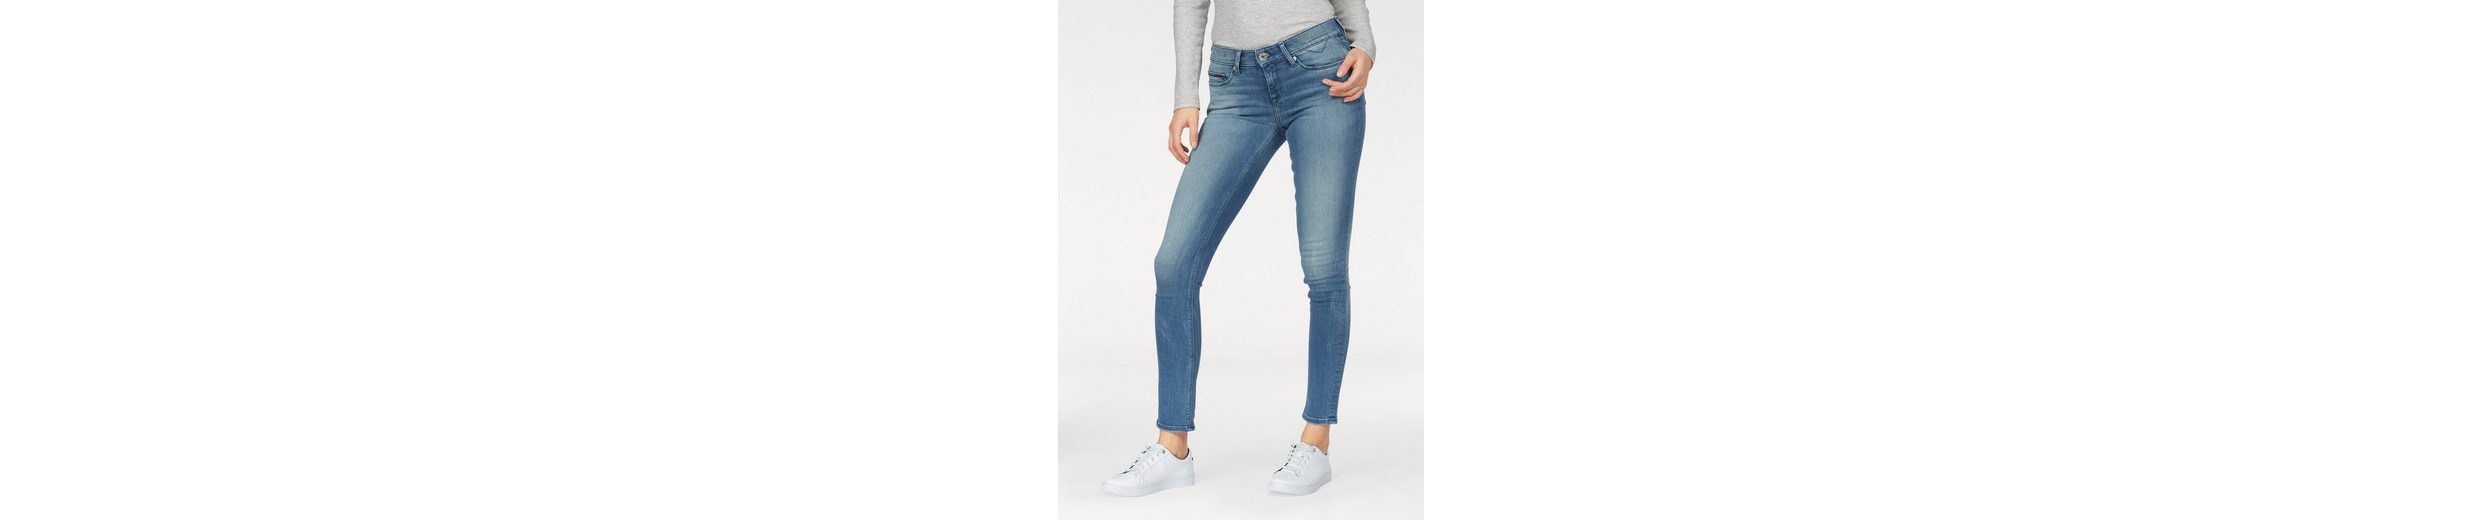 Tommy Jeans DYLILBST RISE Jeans Jeans MID Jeans MID Tommy RISE SKINNY NORA xIwqPdU